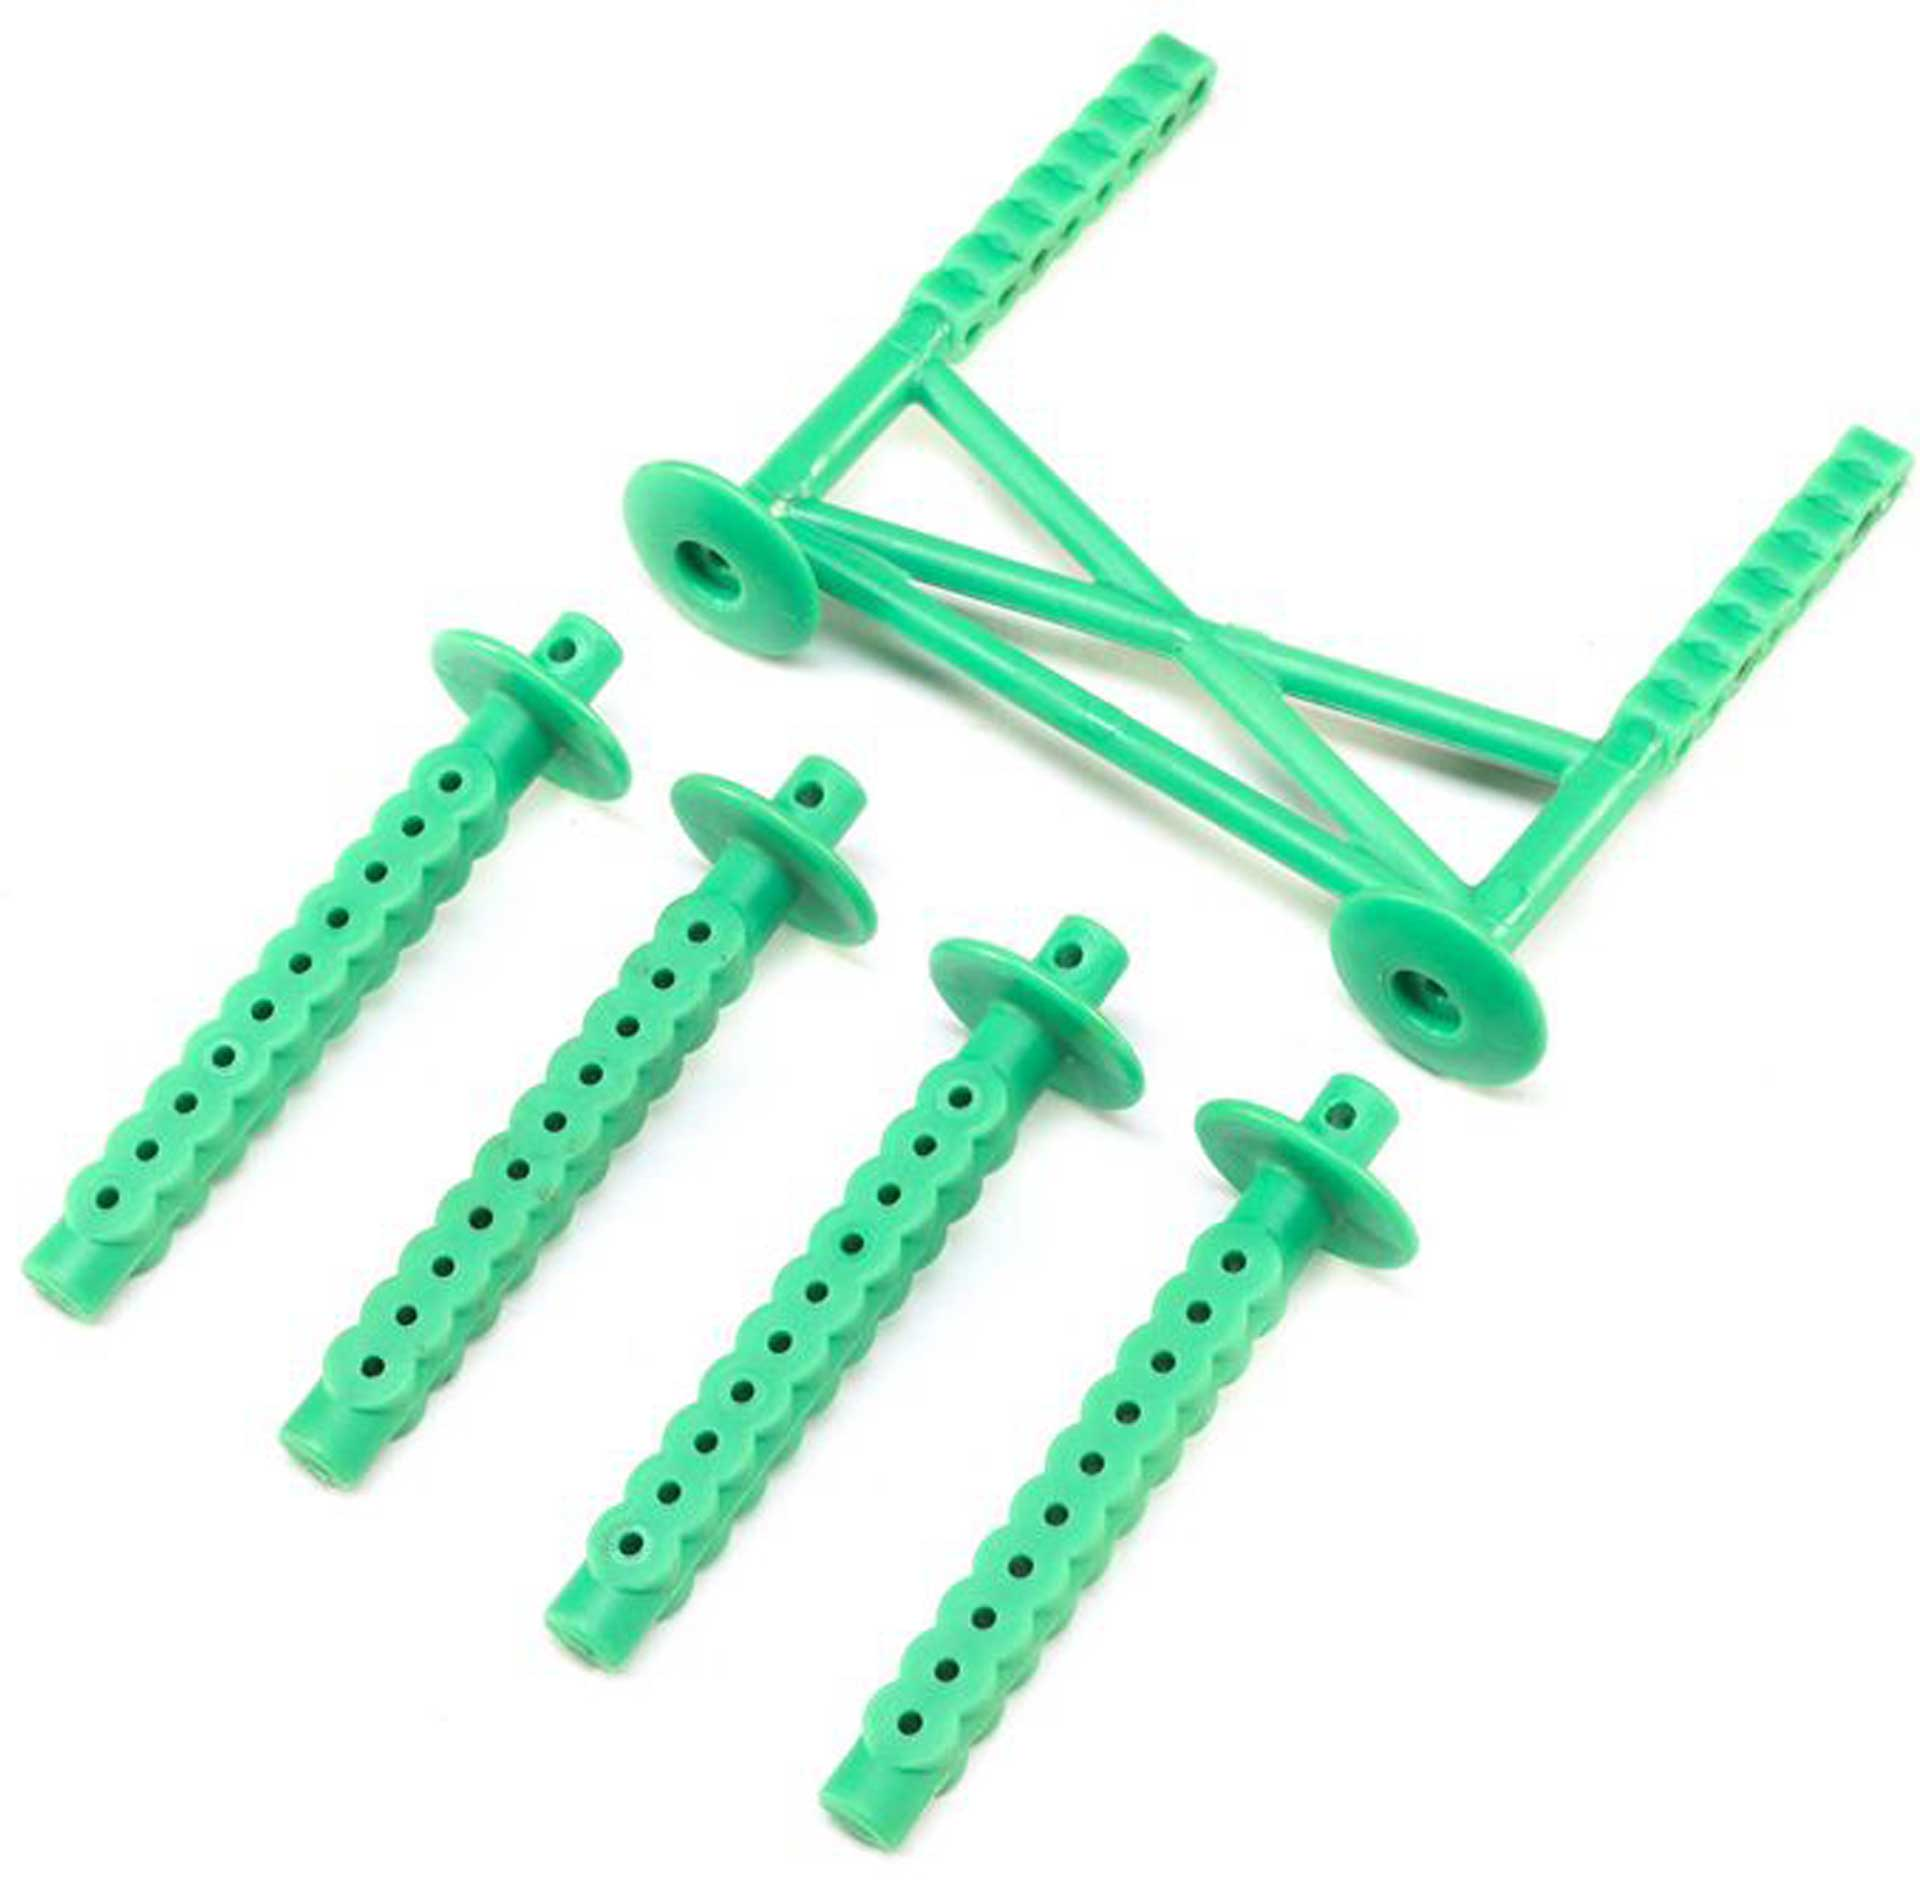 LOSI Rear Body Support and Body Posts, Green: LMT